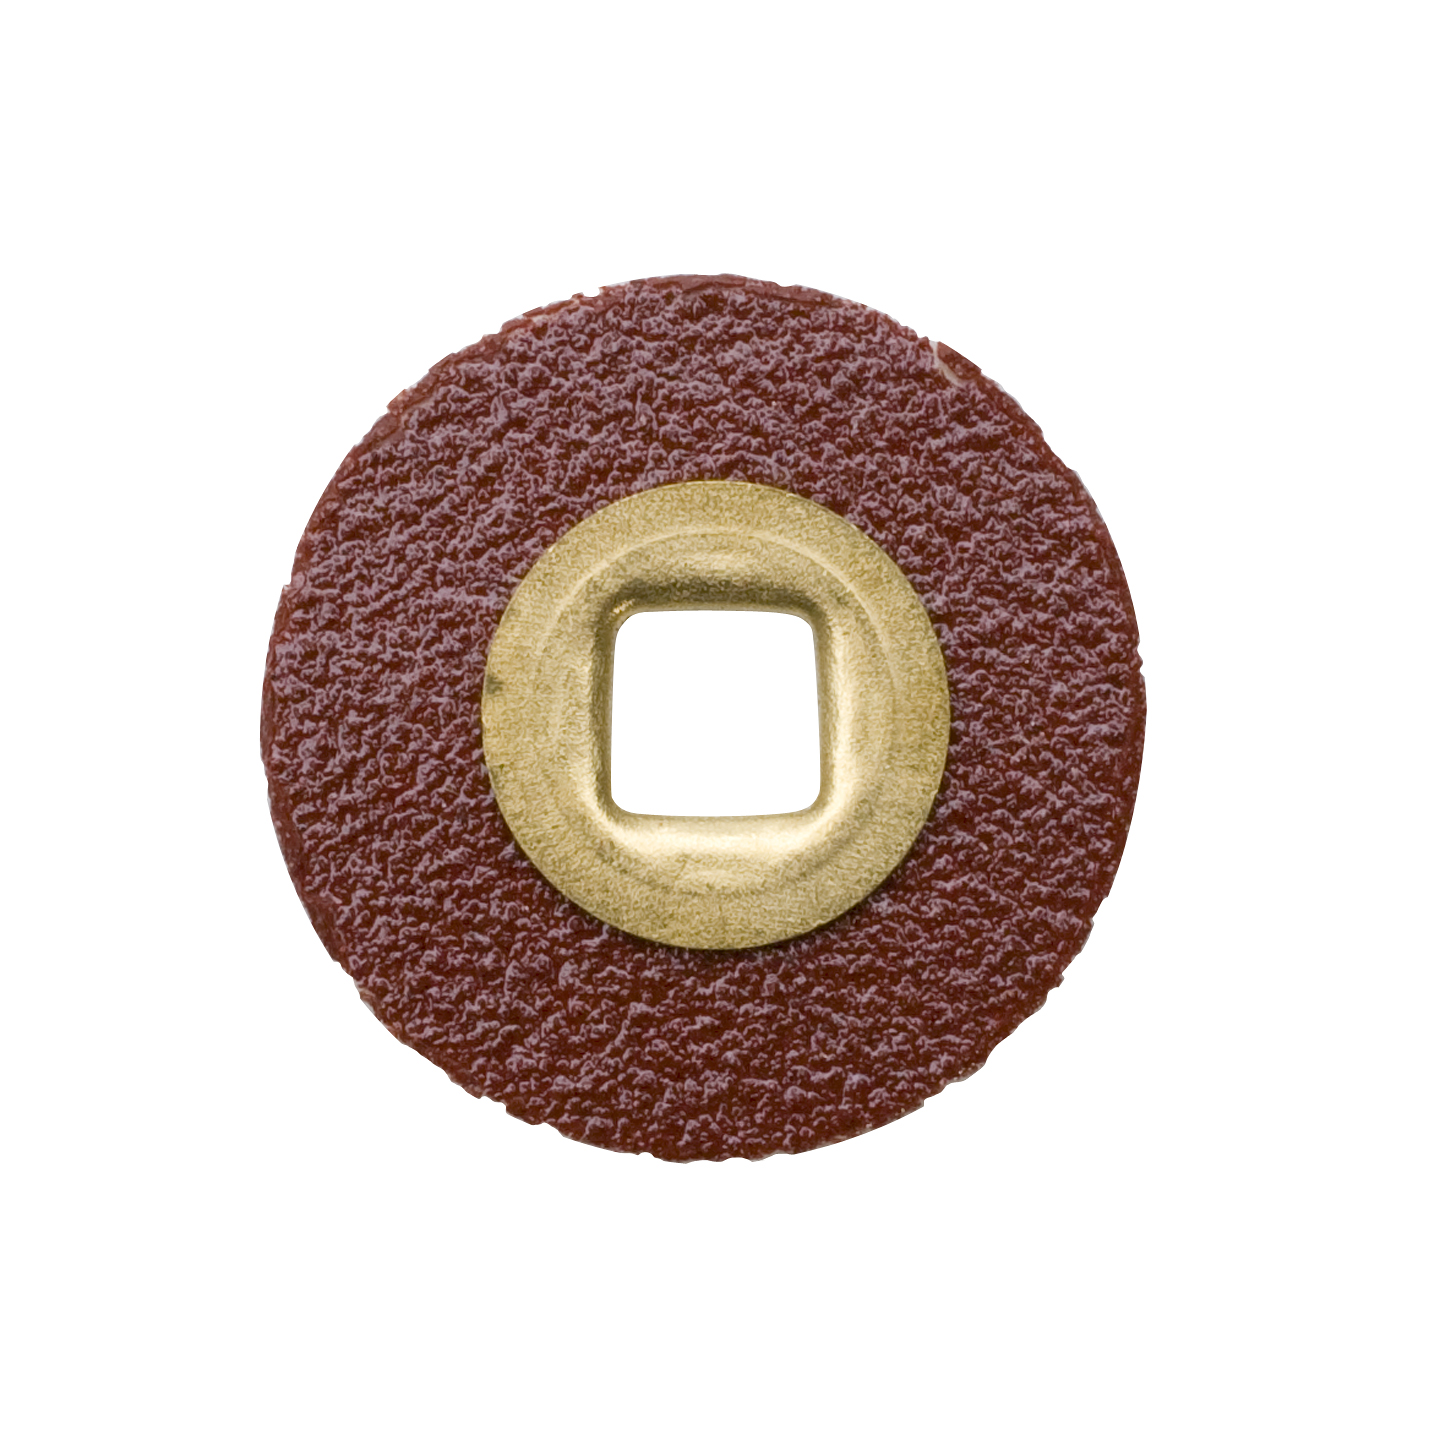 ADALOX BRASS CENTER DISCS 3/4